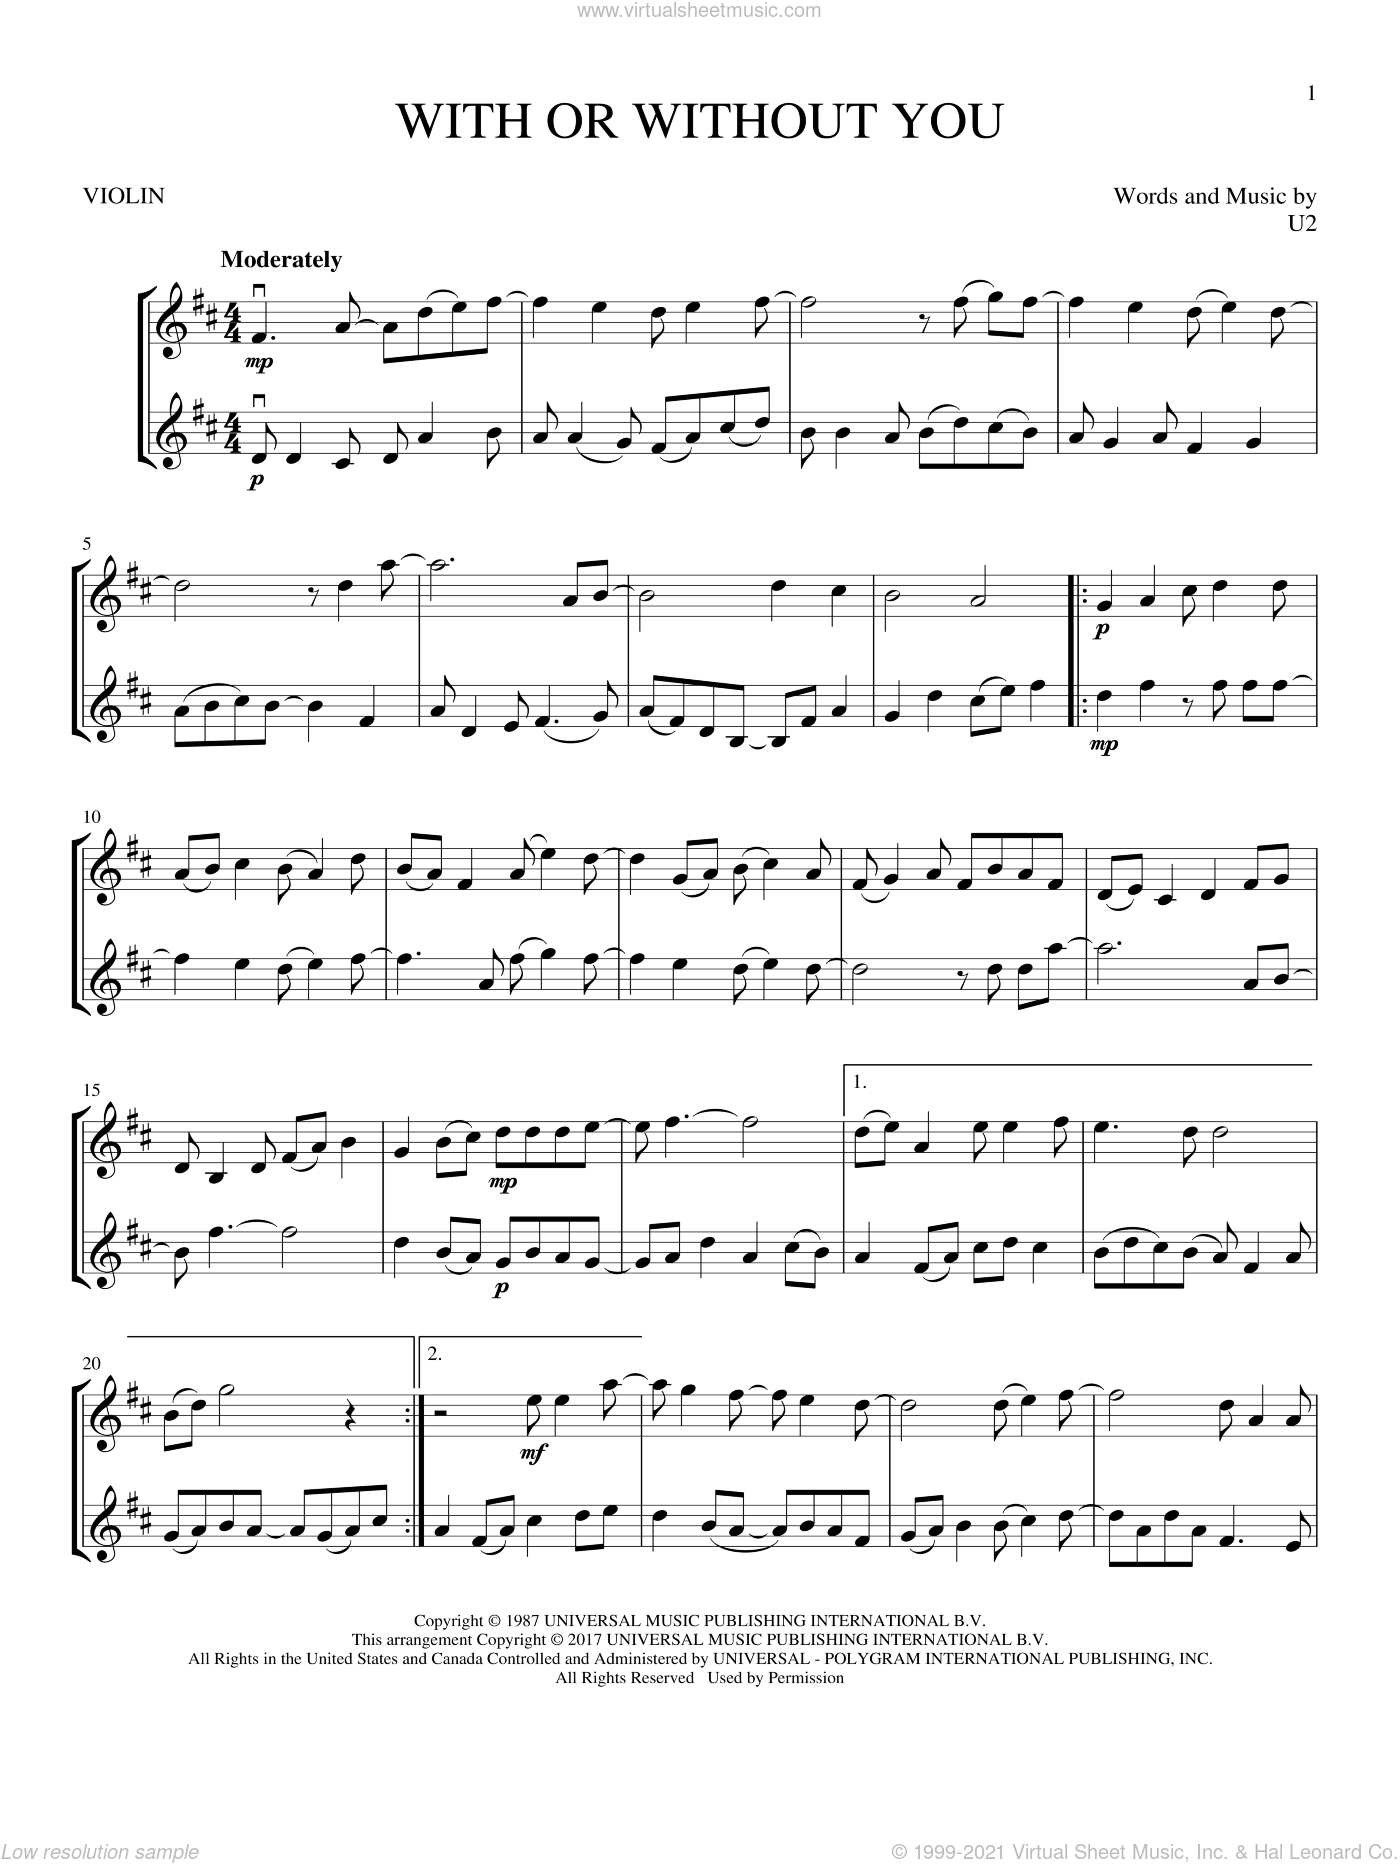 With Or Without You sheet music for two violins (duets, violin duets) by U2, intermediate skill level